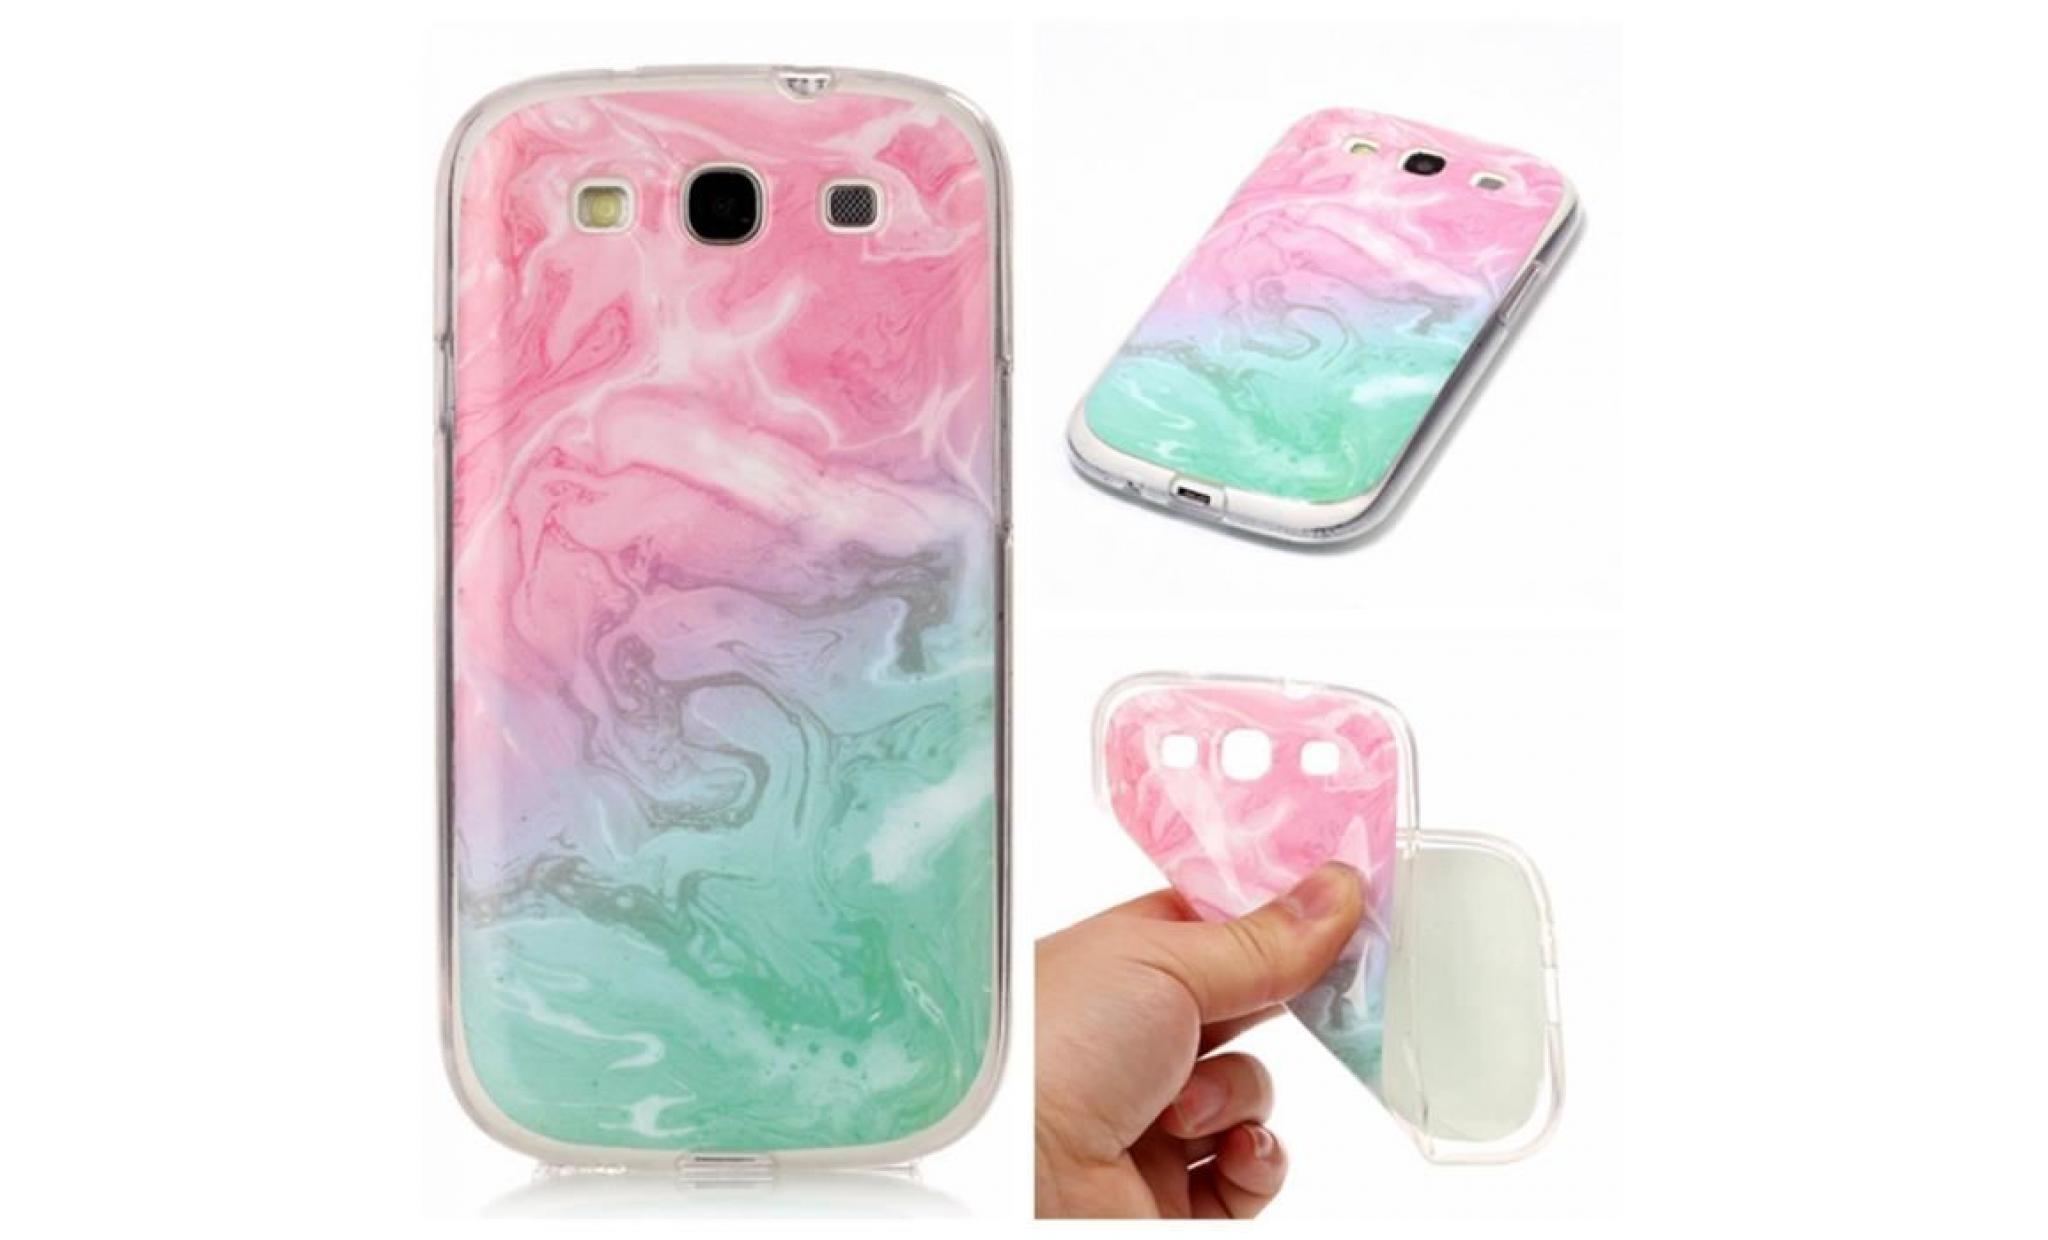 coque pour samsung galaxy s3 i9300 (style 3)